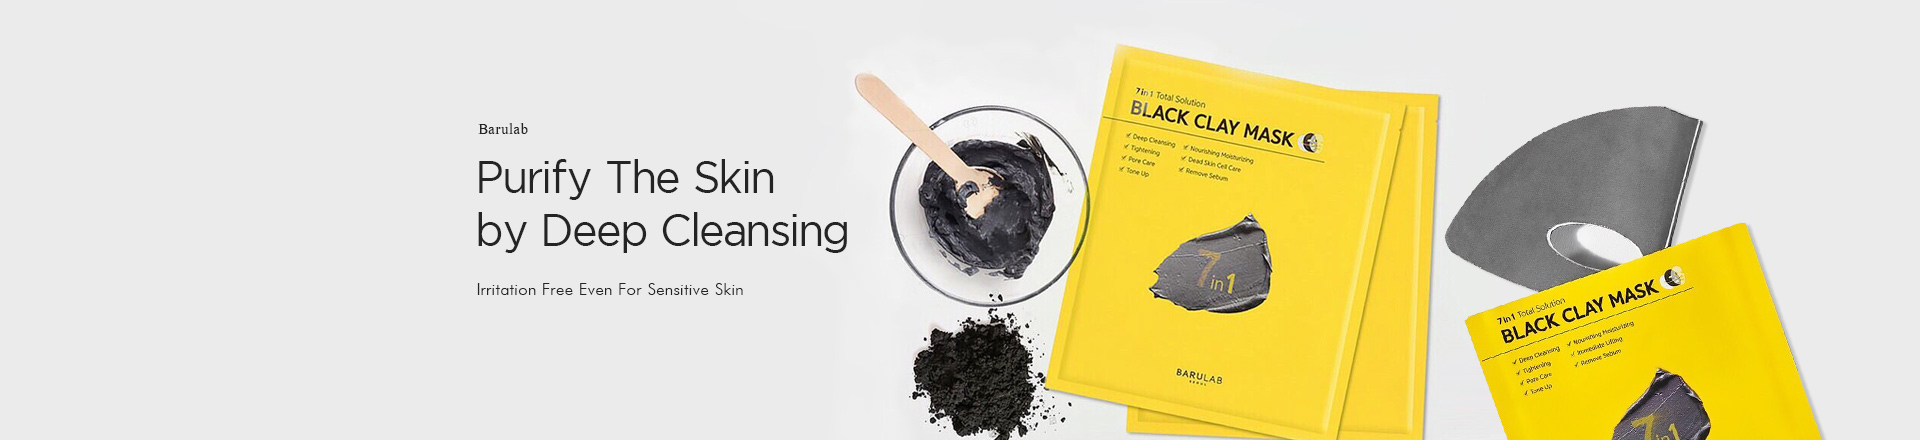 Barulab Black Clay Mask